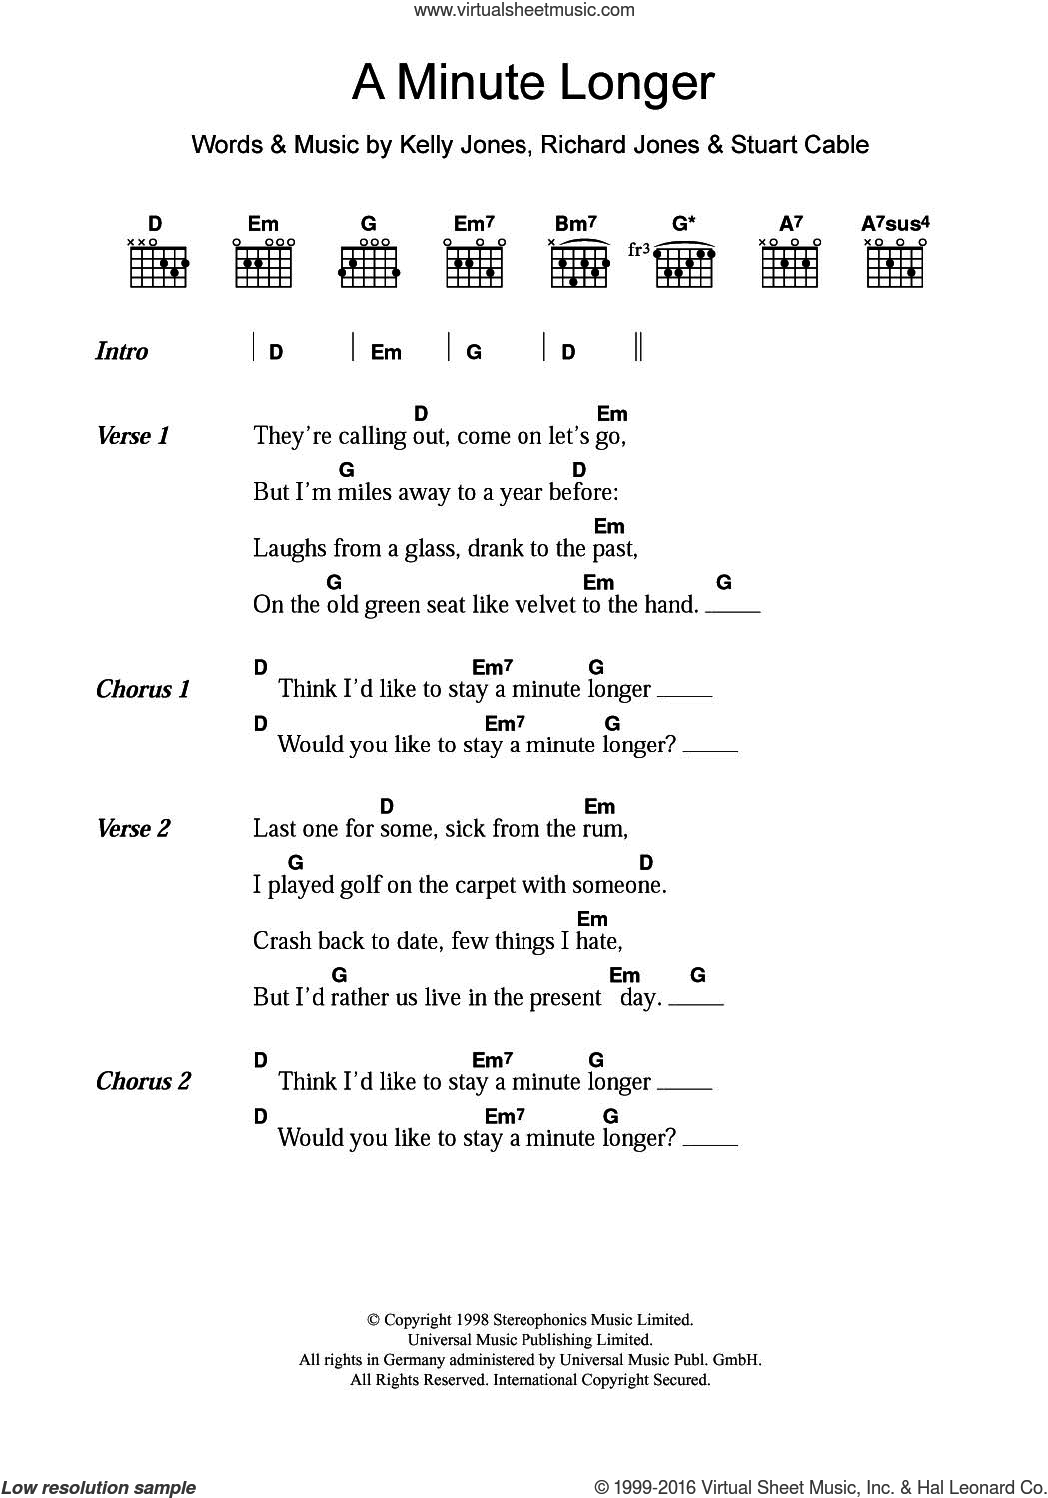 Stereophonics A Minute Longer Sheet Music For Guitar Chords